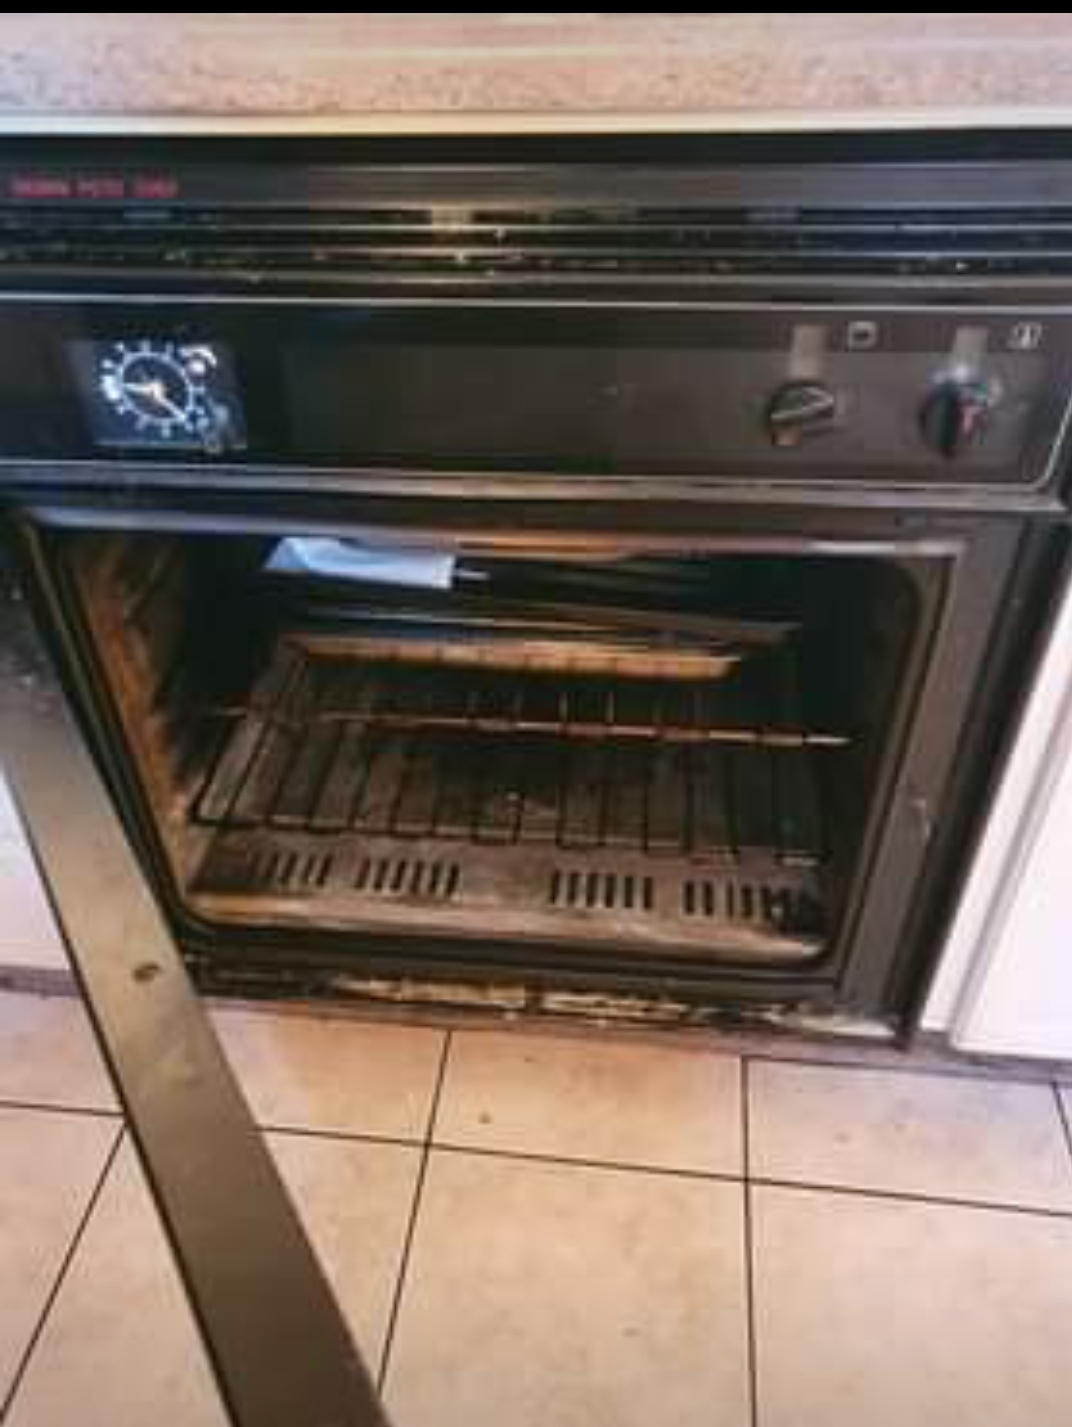 Defy oven & grill